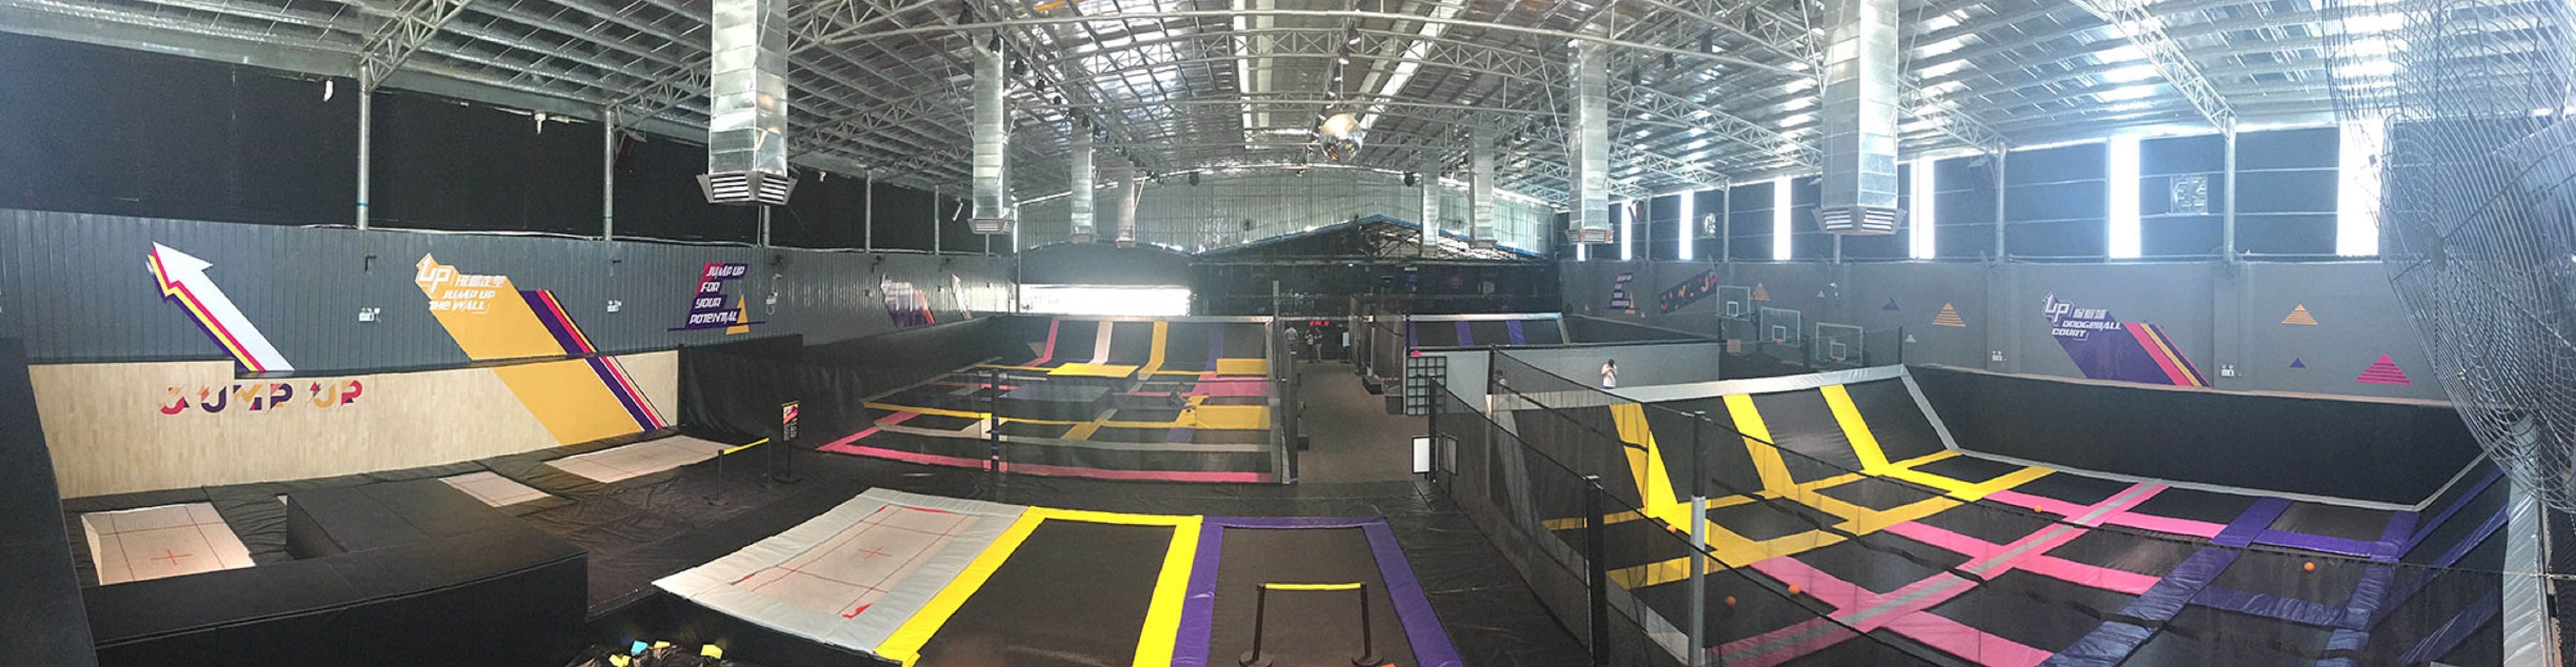 Trampoline Park Newly Opened in Guangzhou